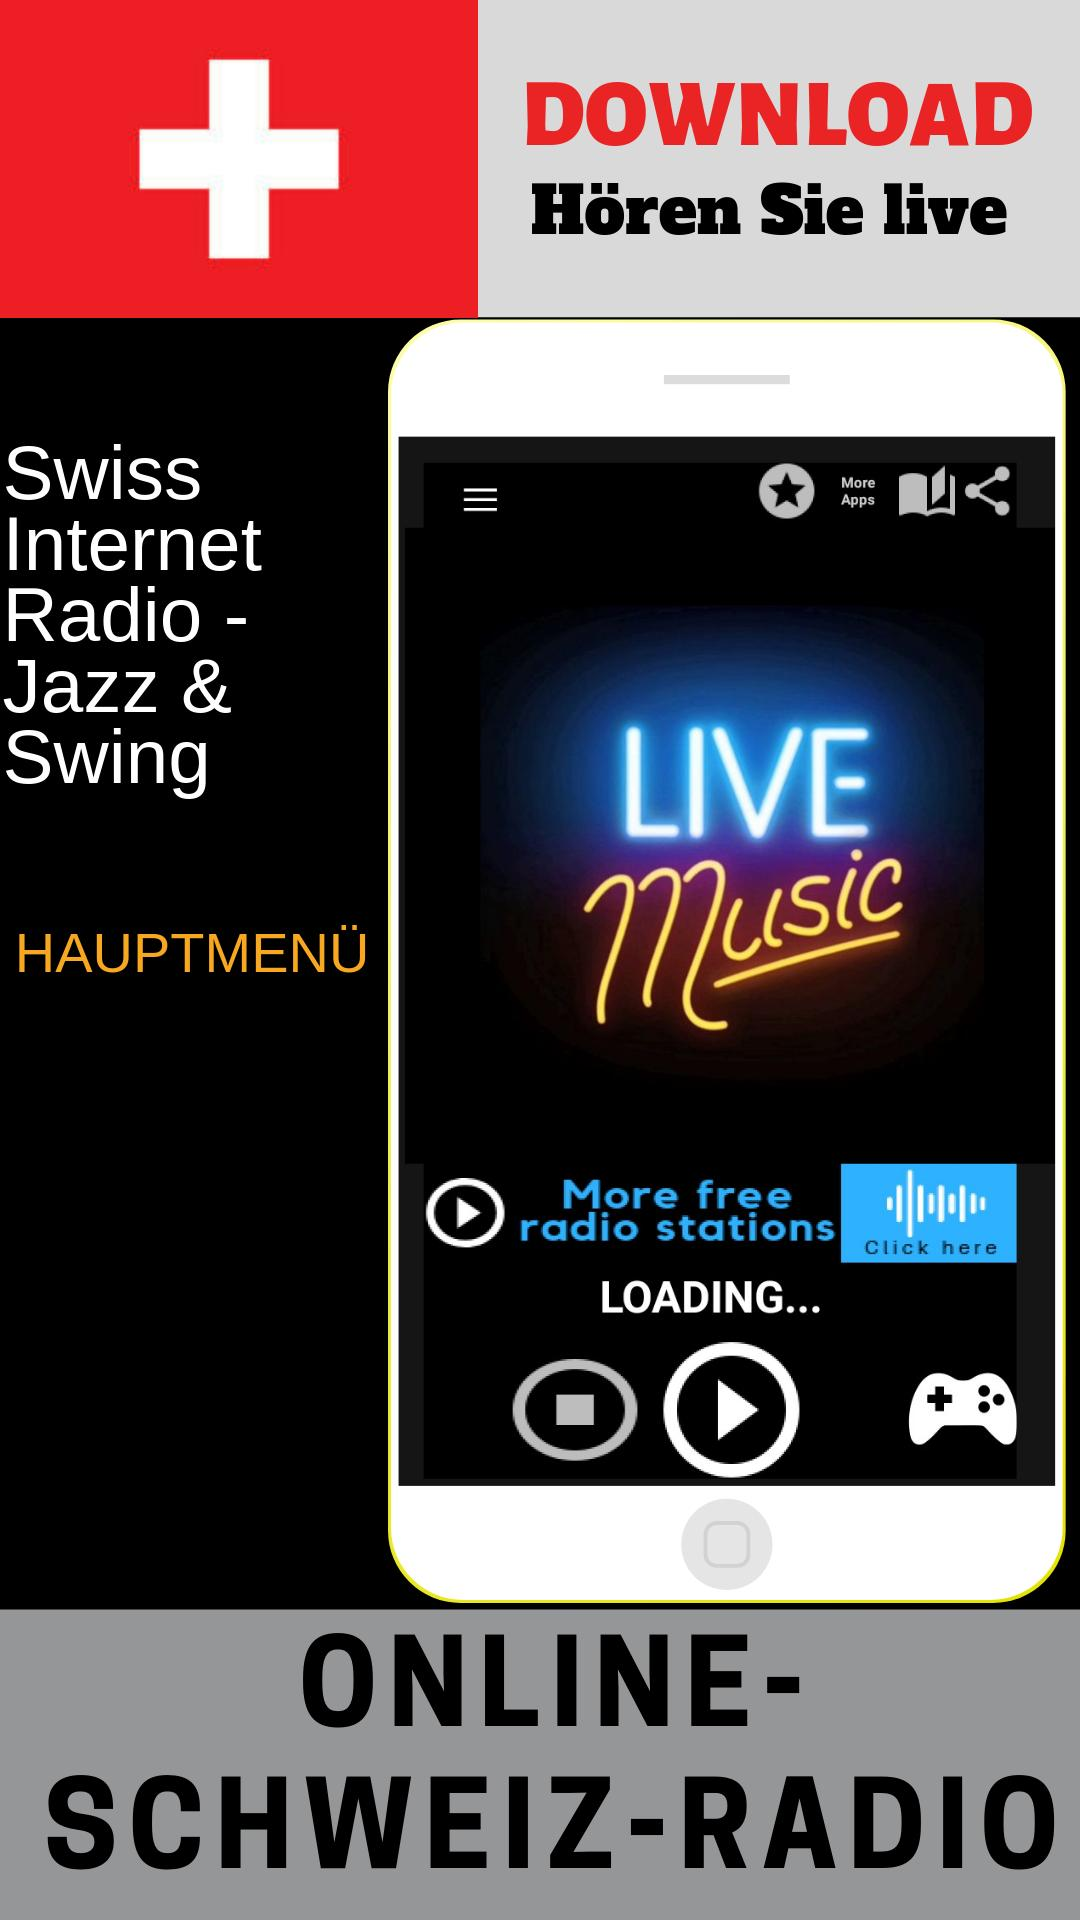 Swiss Internet Radio Jazz & Swing Free Online for Android - APK Download